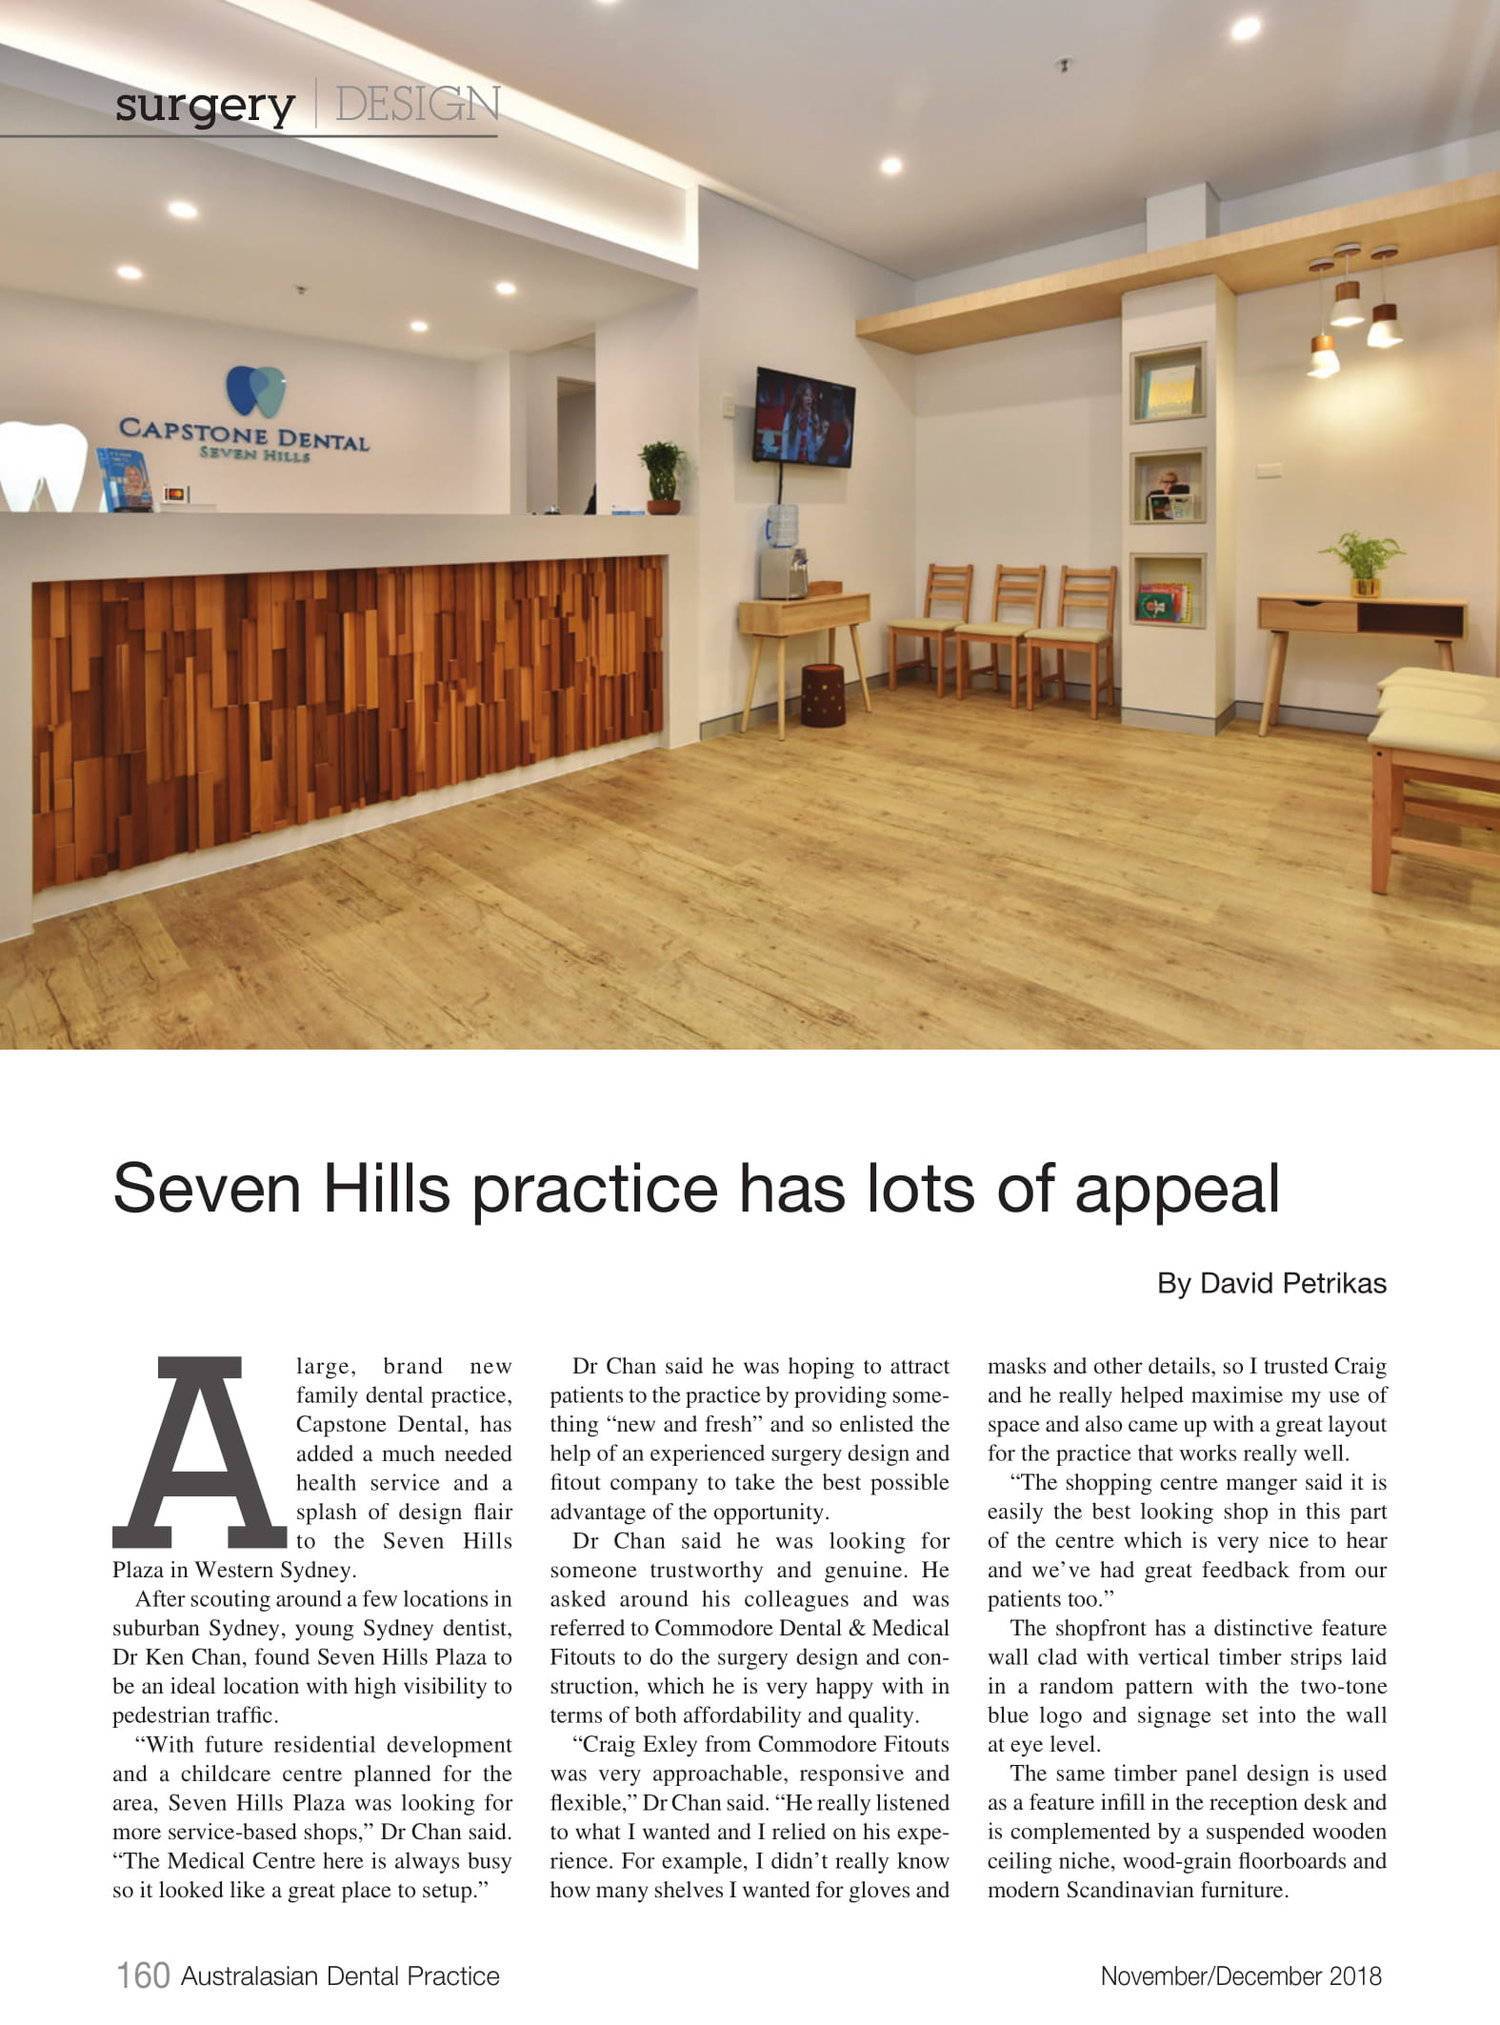 Seven+Hills+practice+has+lots+of+appeal+Page+1.jpg